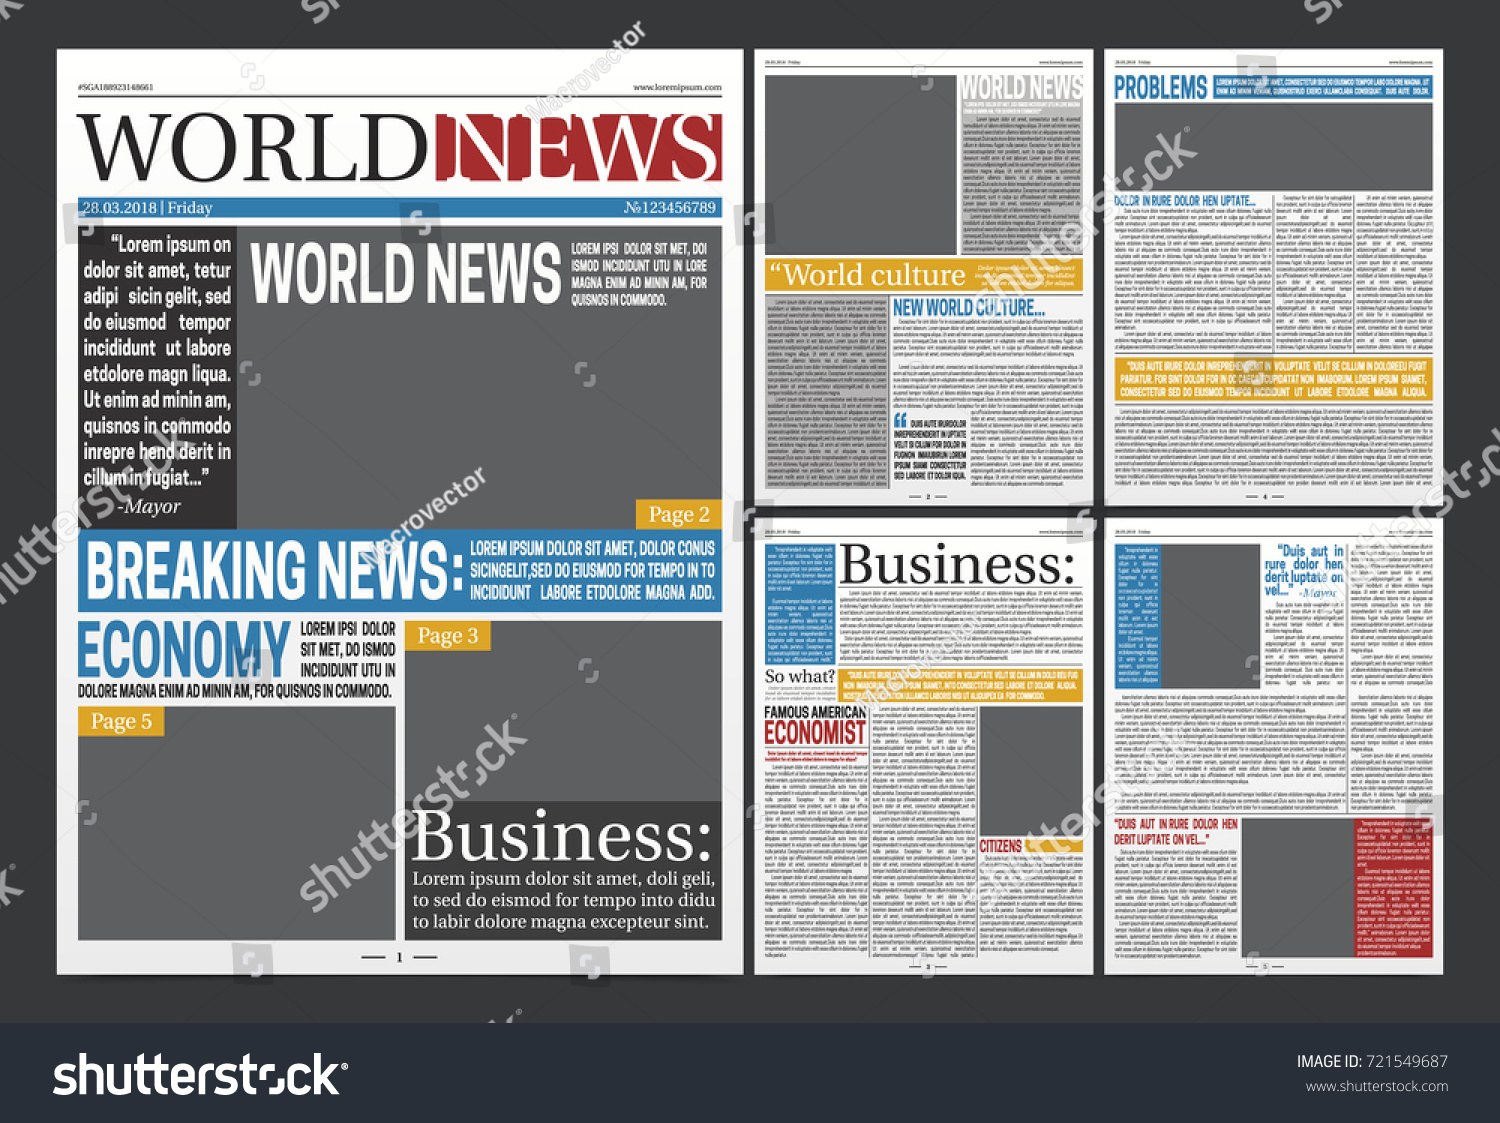 newspaper online template design with world business news economy headlines and blank spaces for images realistic